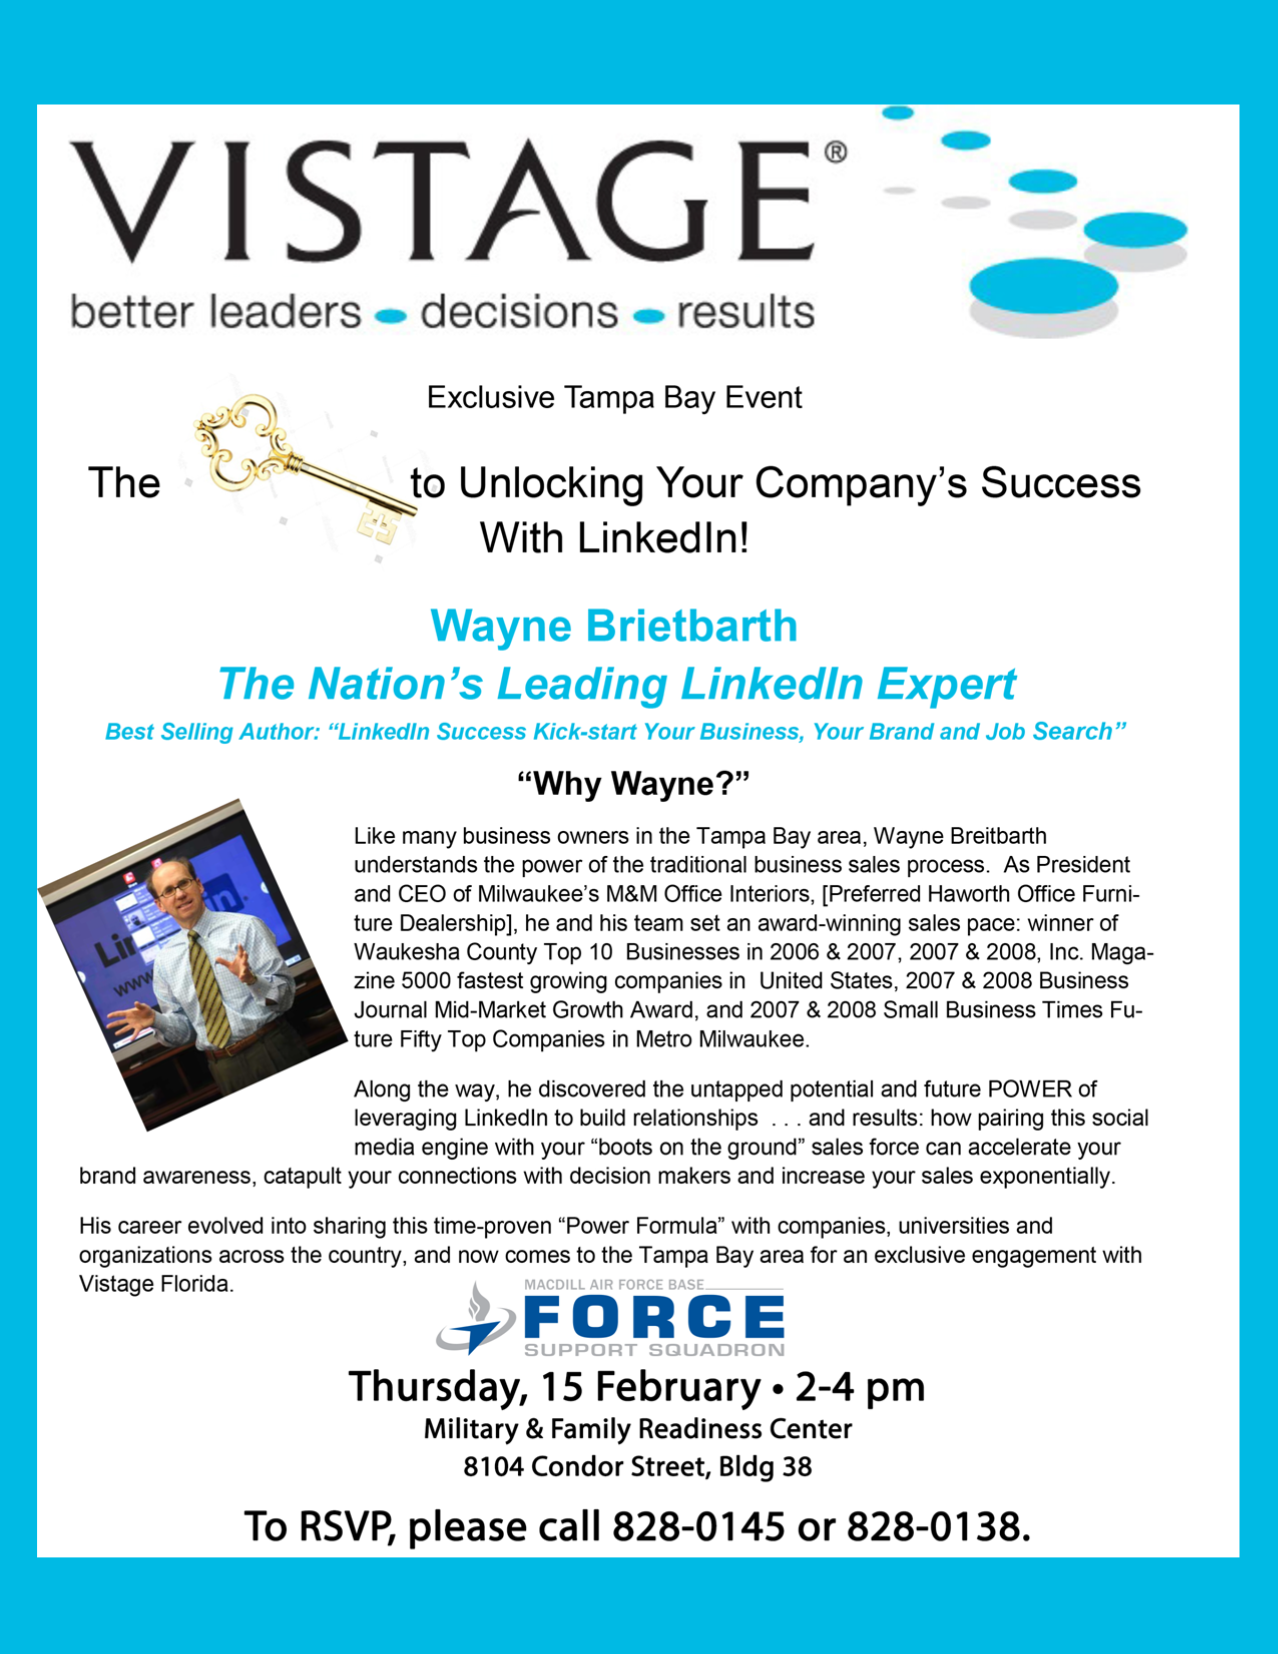 Military Executive Training - Vistage Cause Marketing